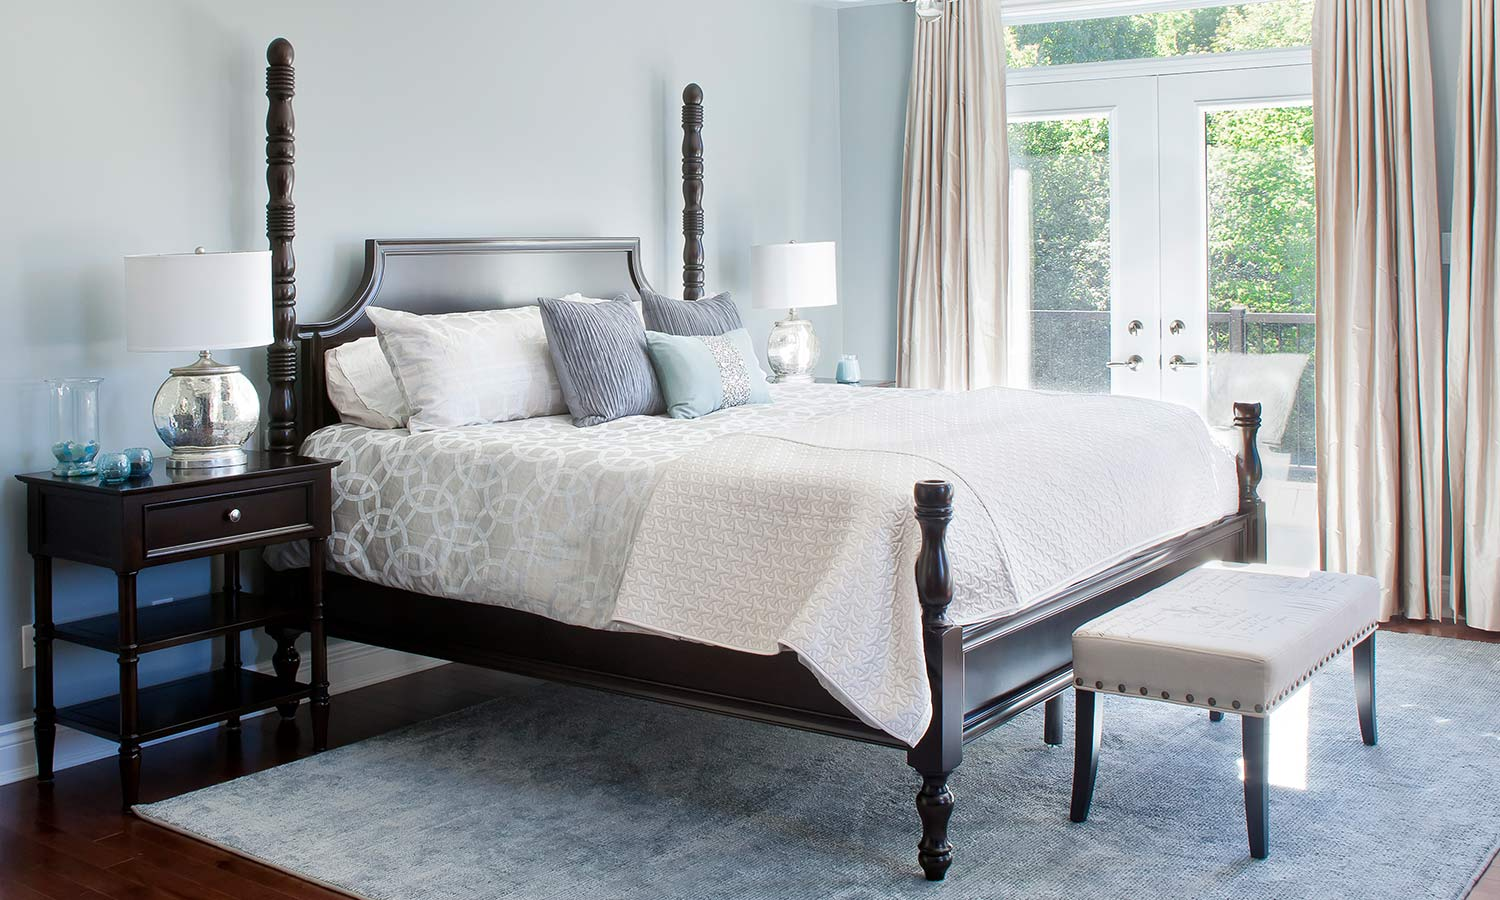 A bed with two tall posts on each corner of the head of the bed, and two smaller posts for the foot-corners.